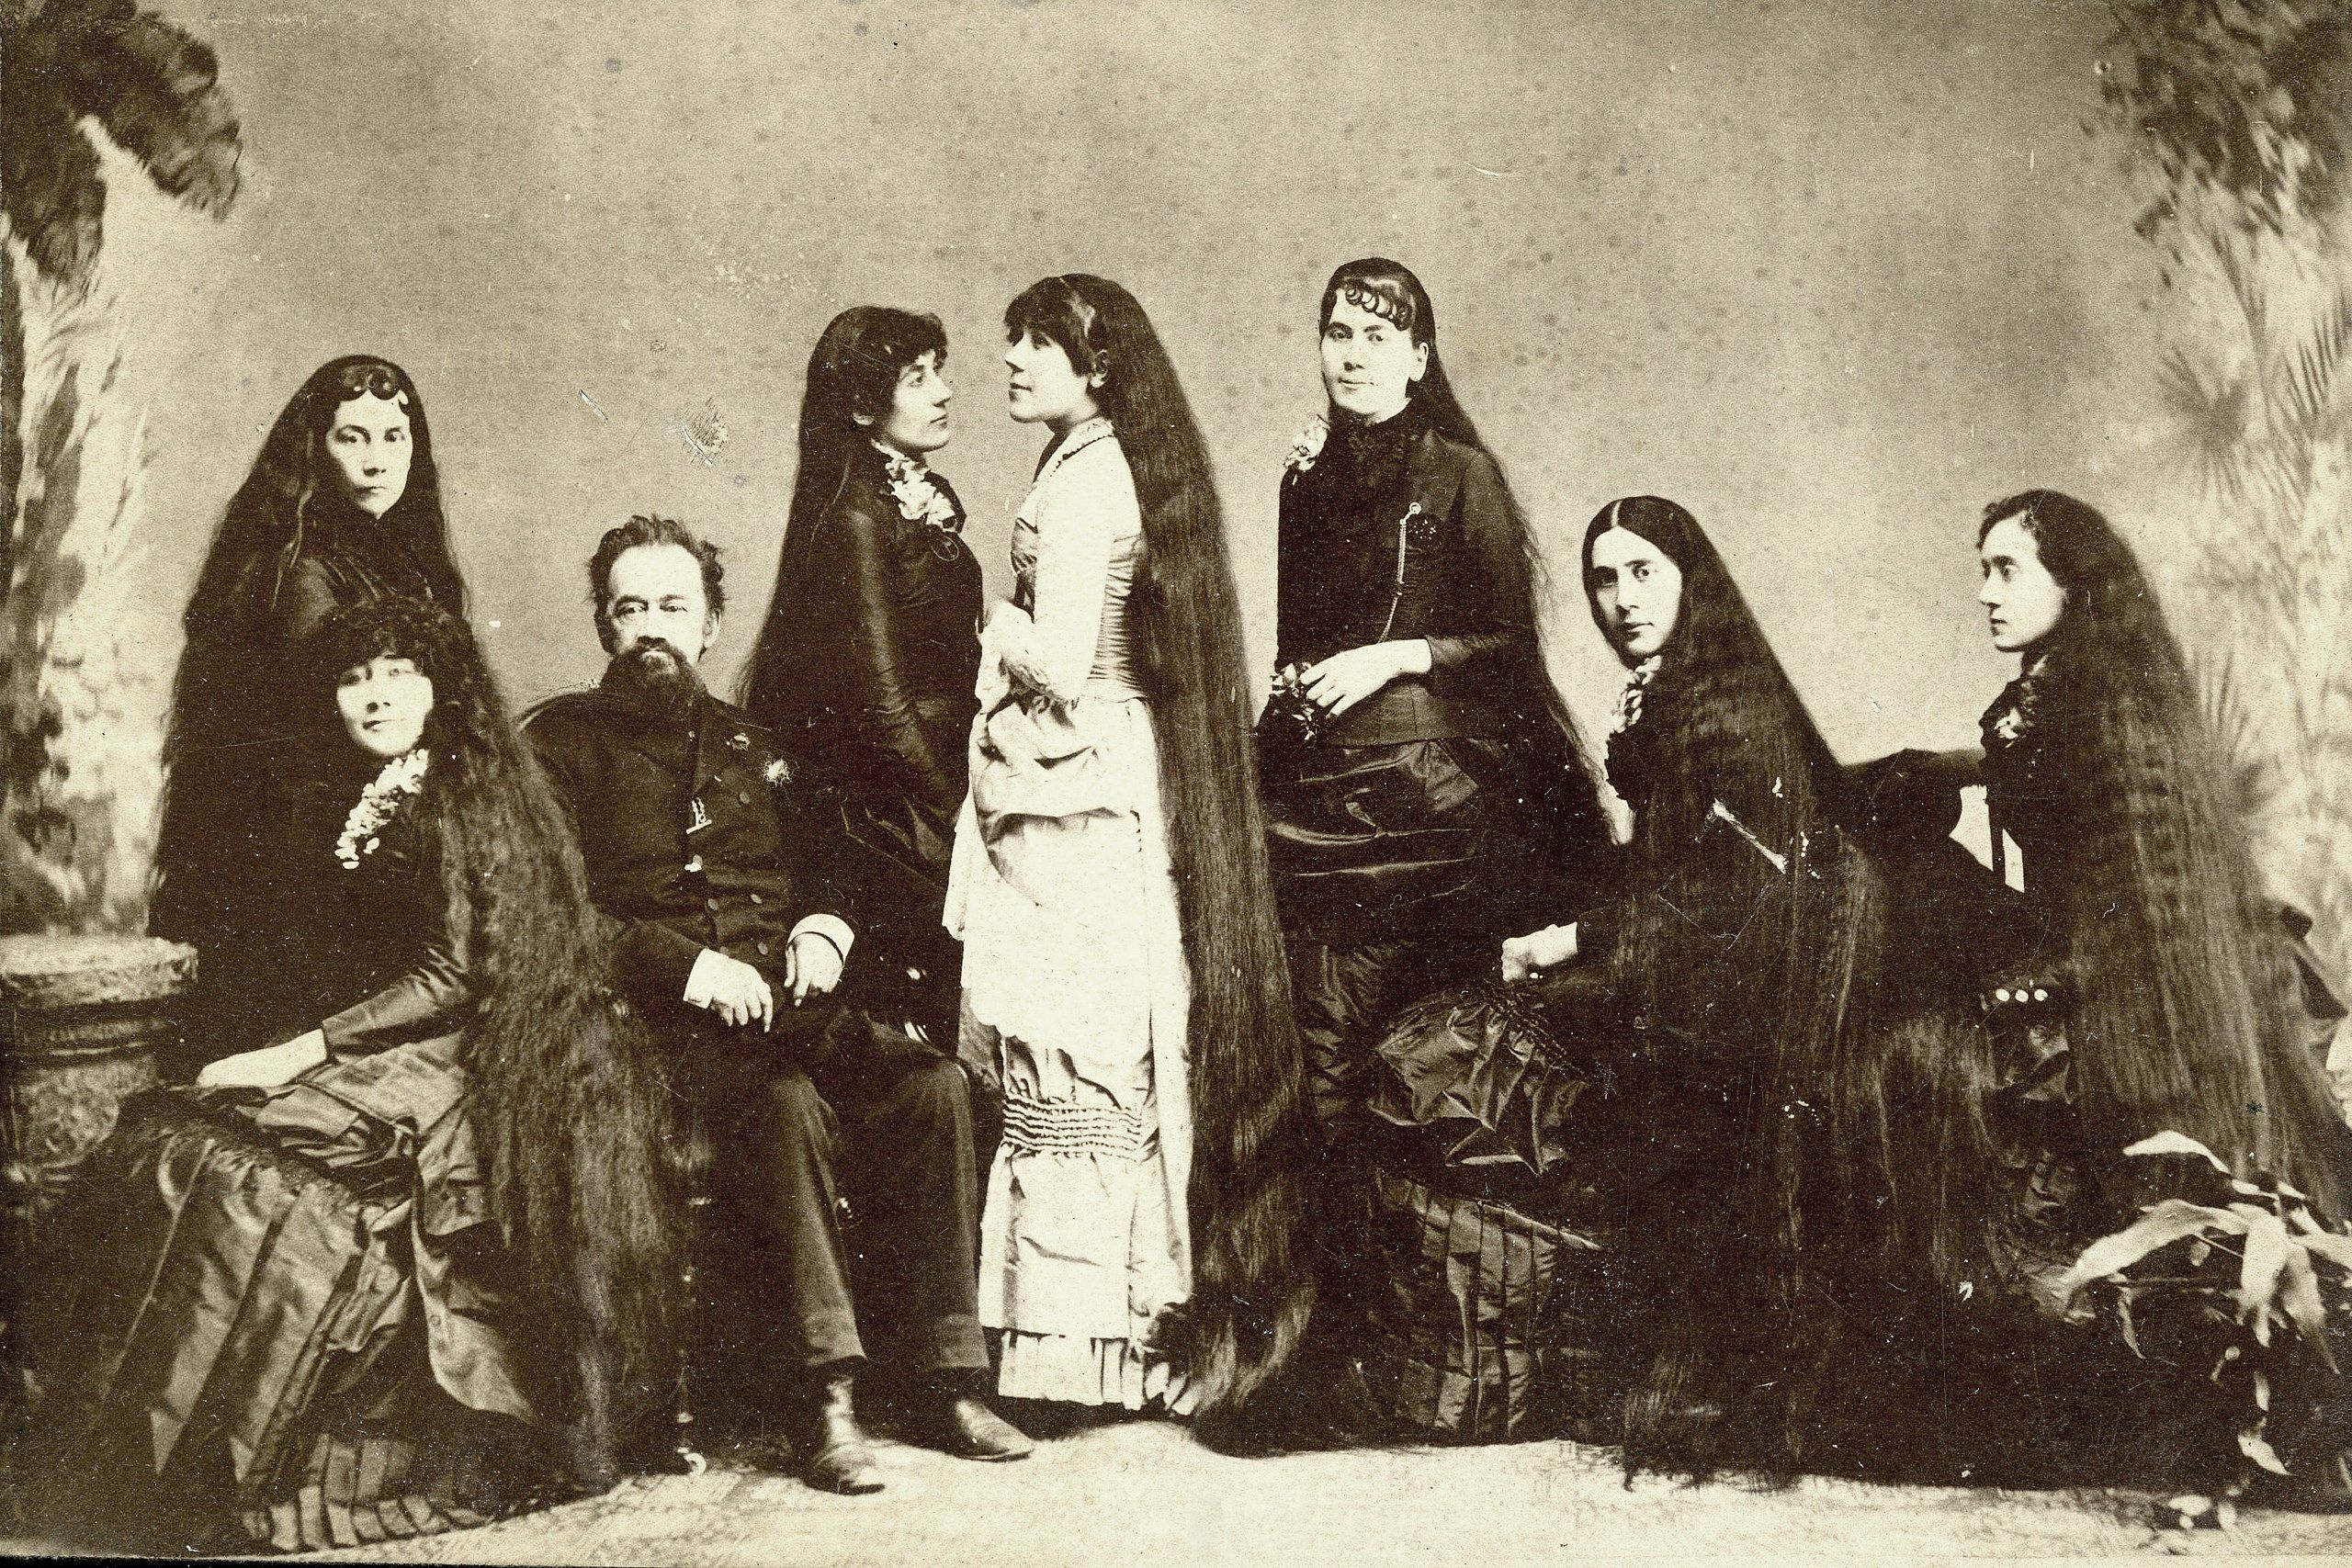 The Seven Sutherland Sisters were a sister act sing group. They performed with Barnum and Bailey's from the early 1880s to the 1900s. Their father capitalized on the public's fascination with their hair by creating a line of hair care products.